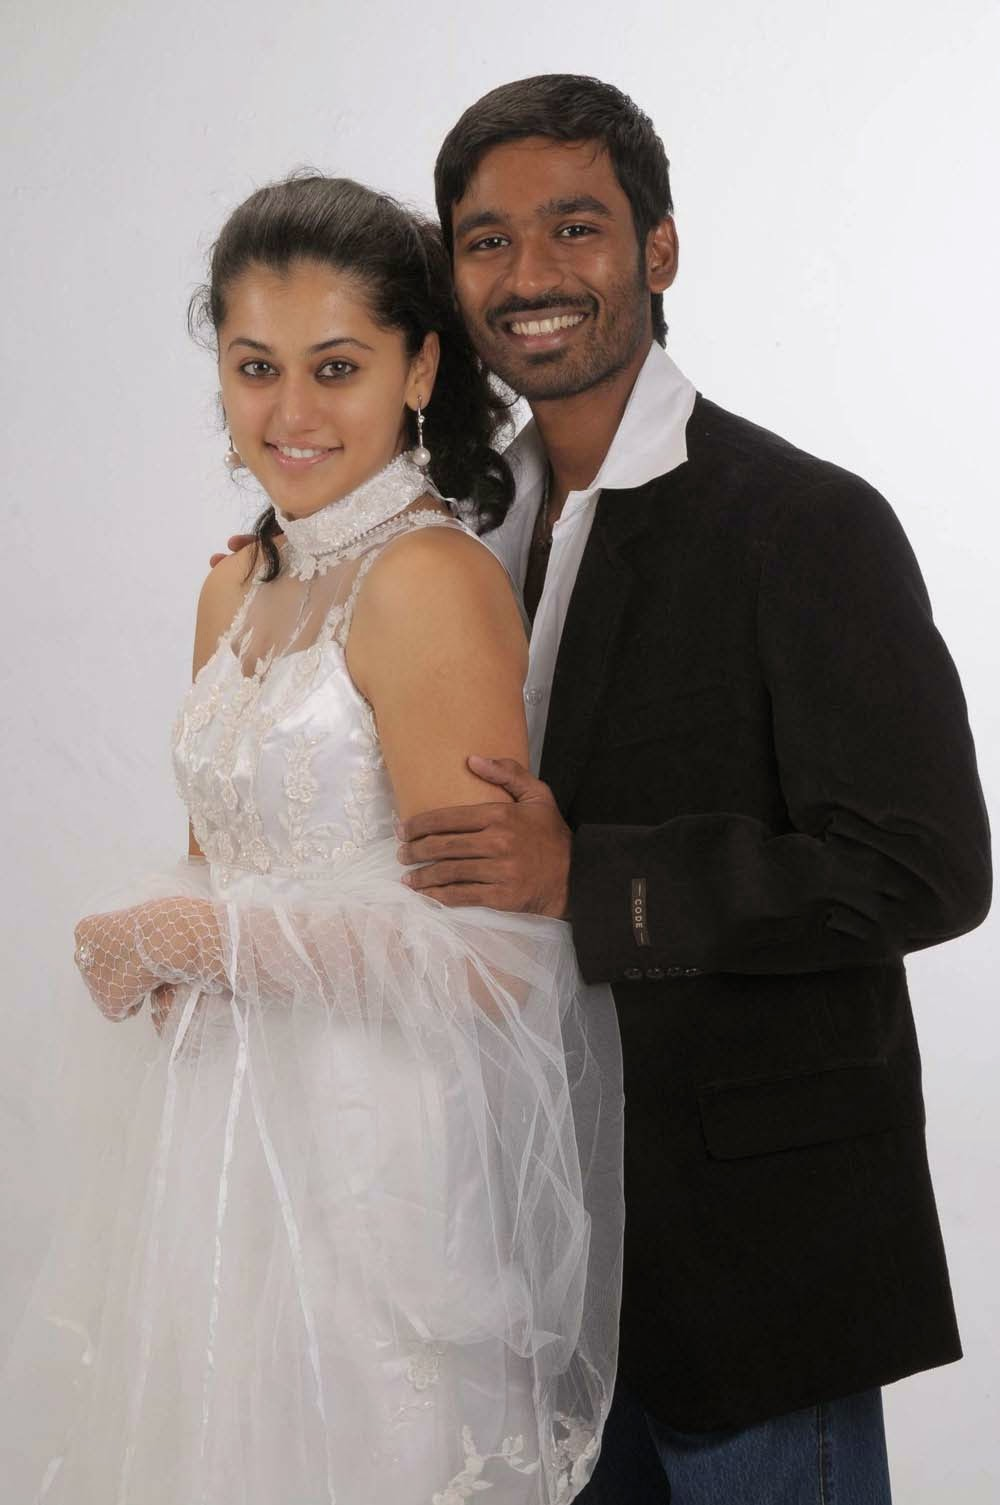 actress celebrities photos: dhanush, taapsee pannu pics from